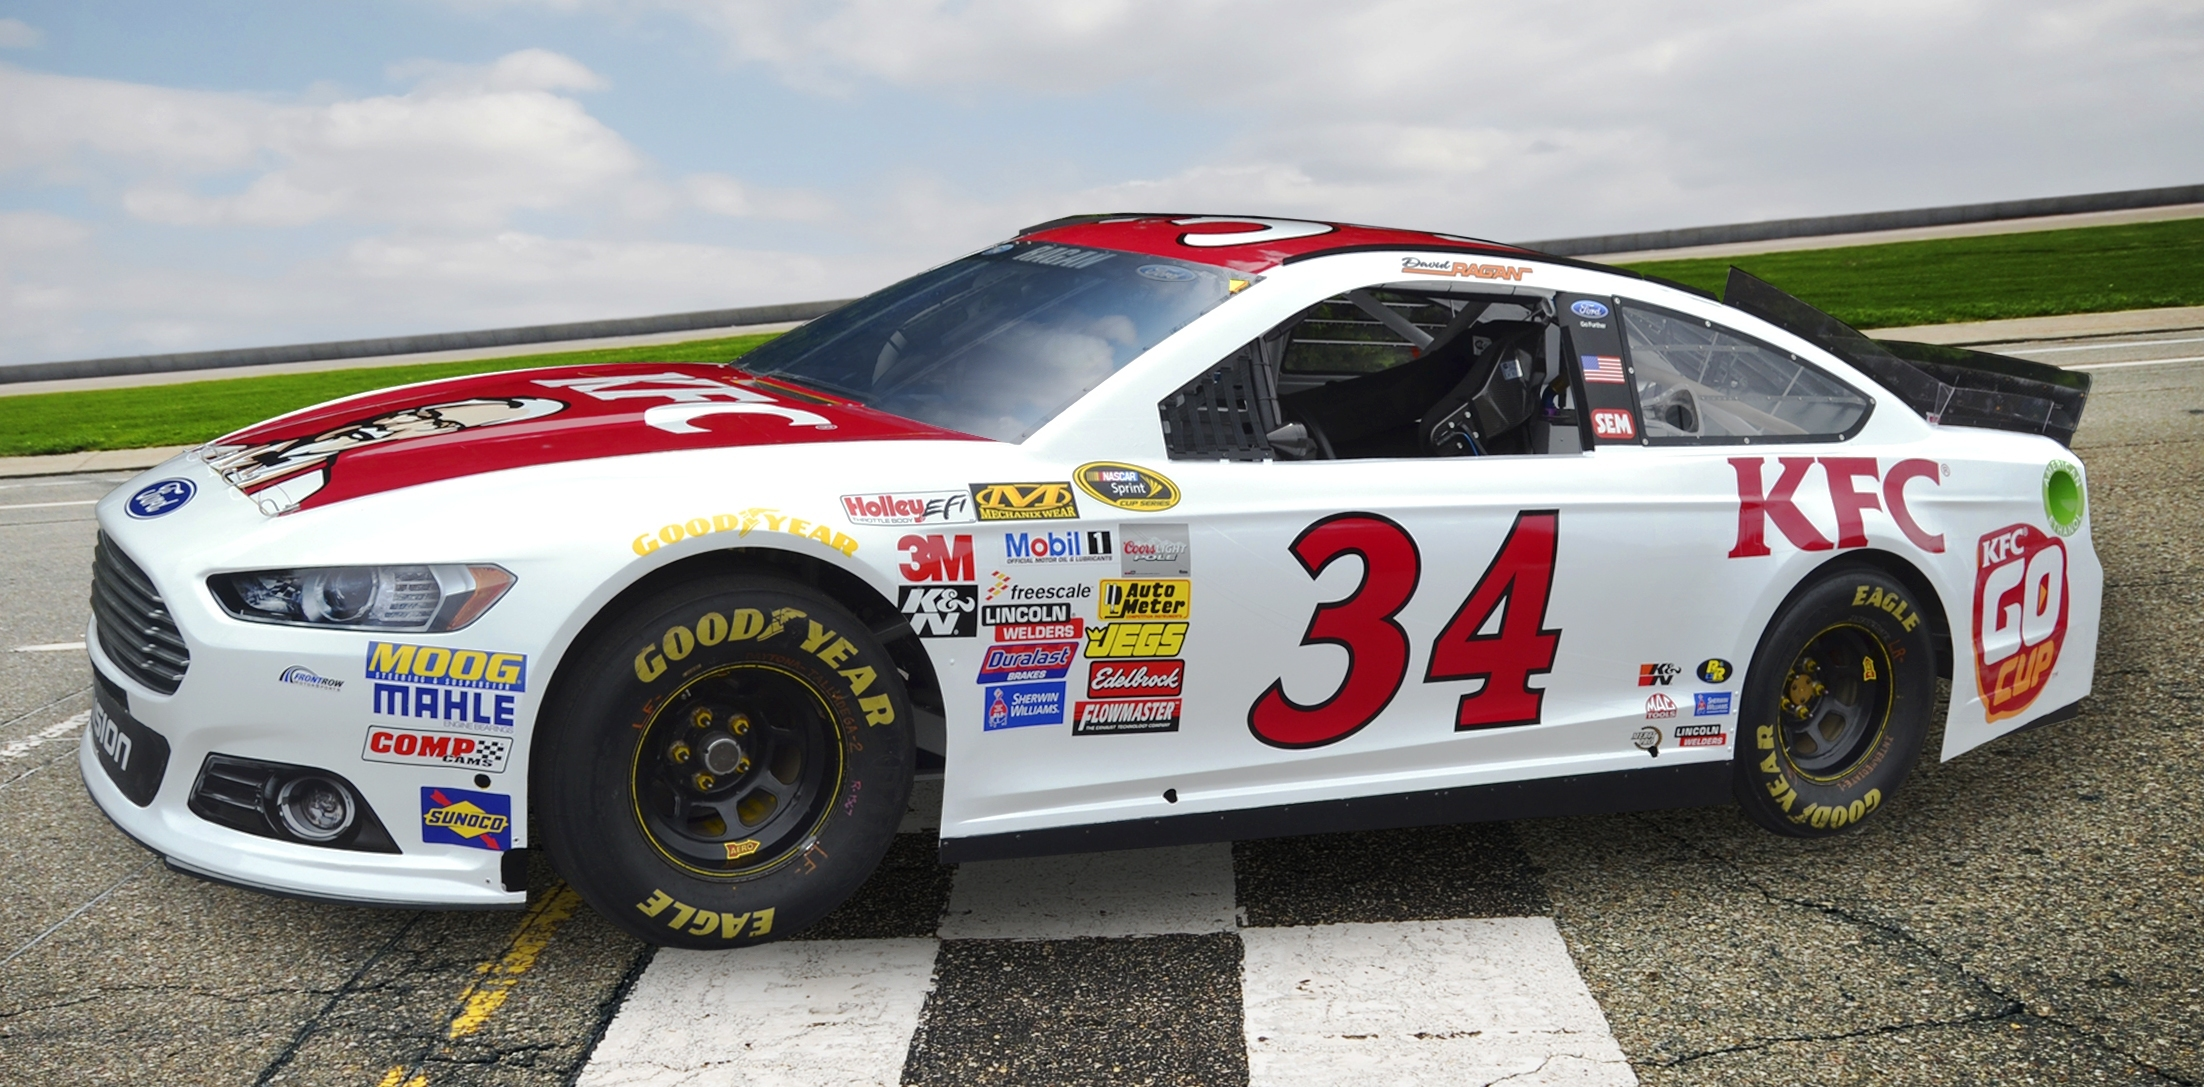 David Ragan will drive the No. 34 KFC Go Cup Ford Fusion in this weekend's NASCAR Sprint Cup race in Talladega, Ala. (Photo: Business Wire)